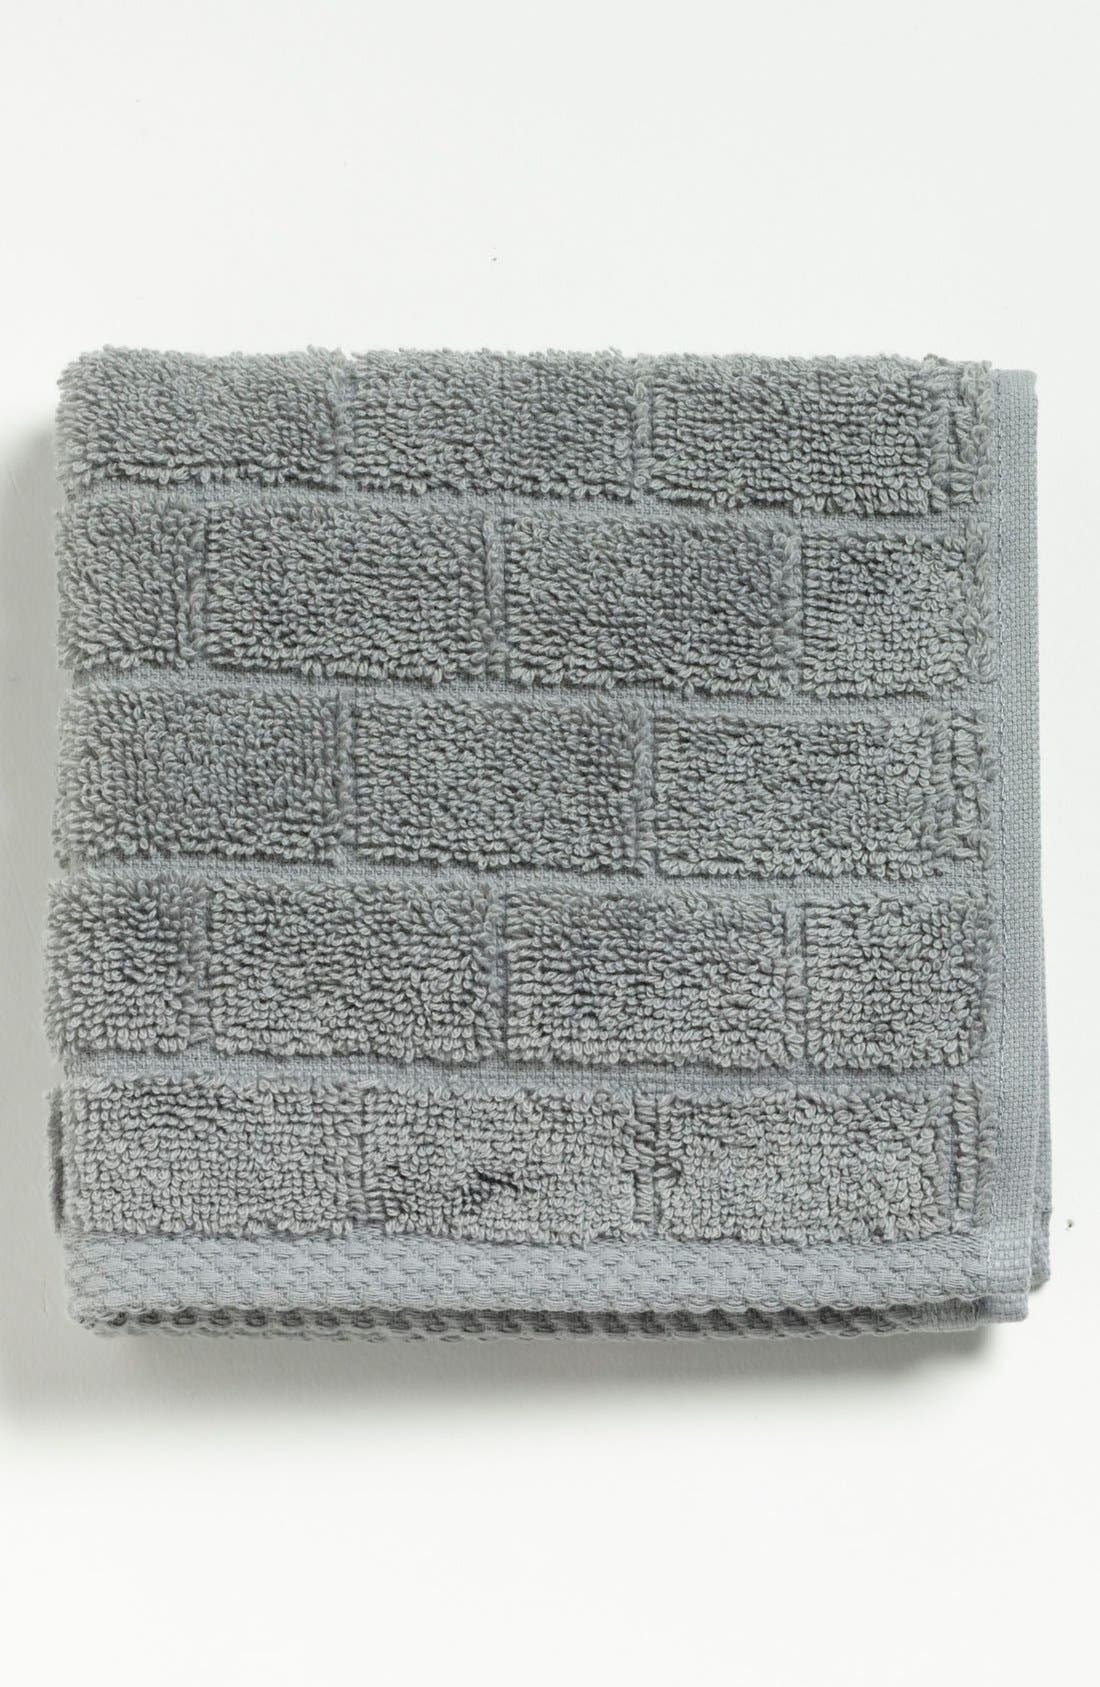 Alternate Image 1 Selected - Waterworks Studio 'Subway' Combed Cotton Washcloth (Online Only)